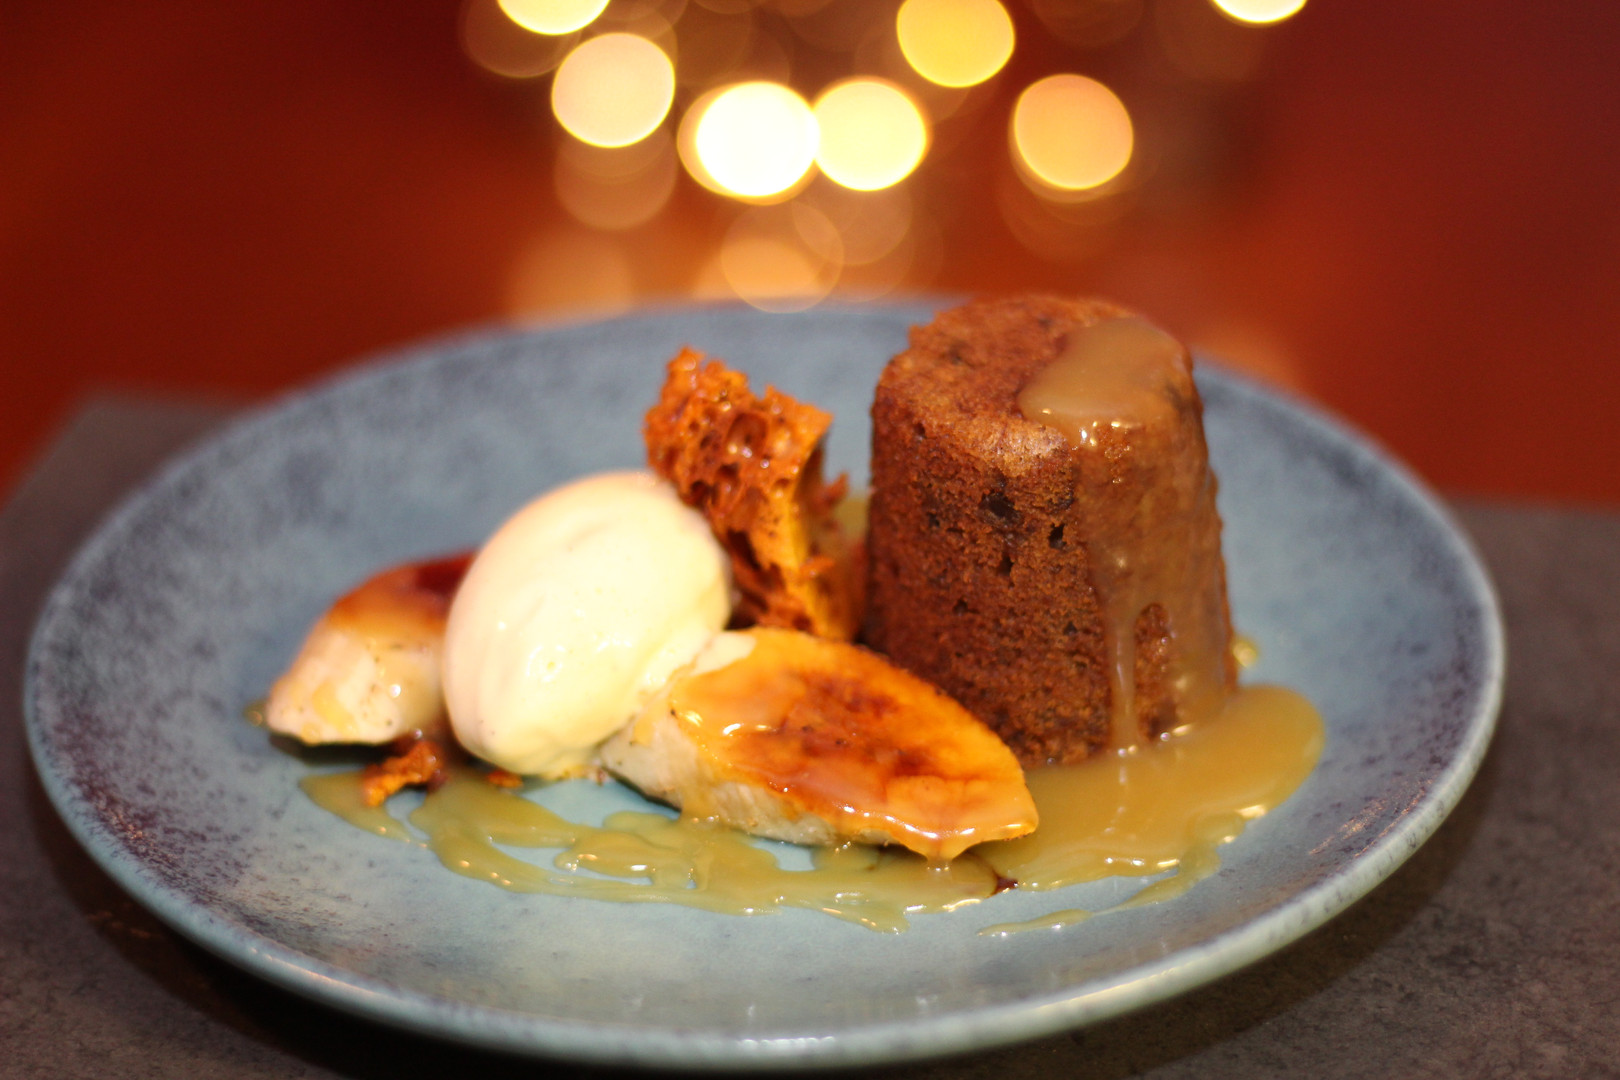 Banana sticky pudding, honeycomb & butterscotch